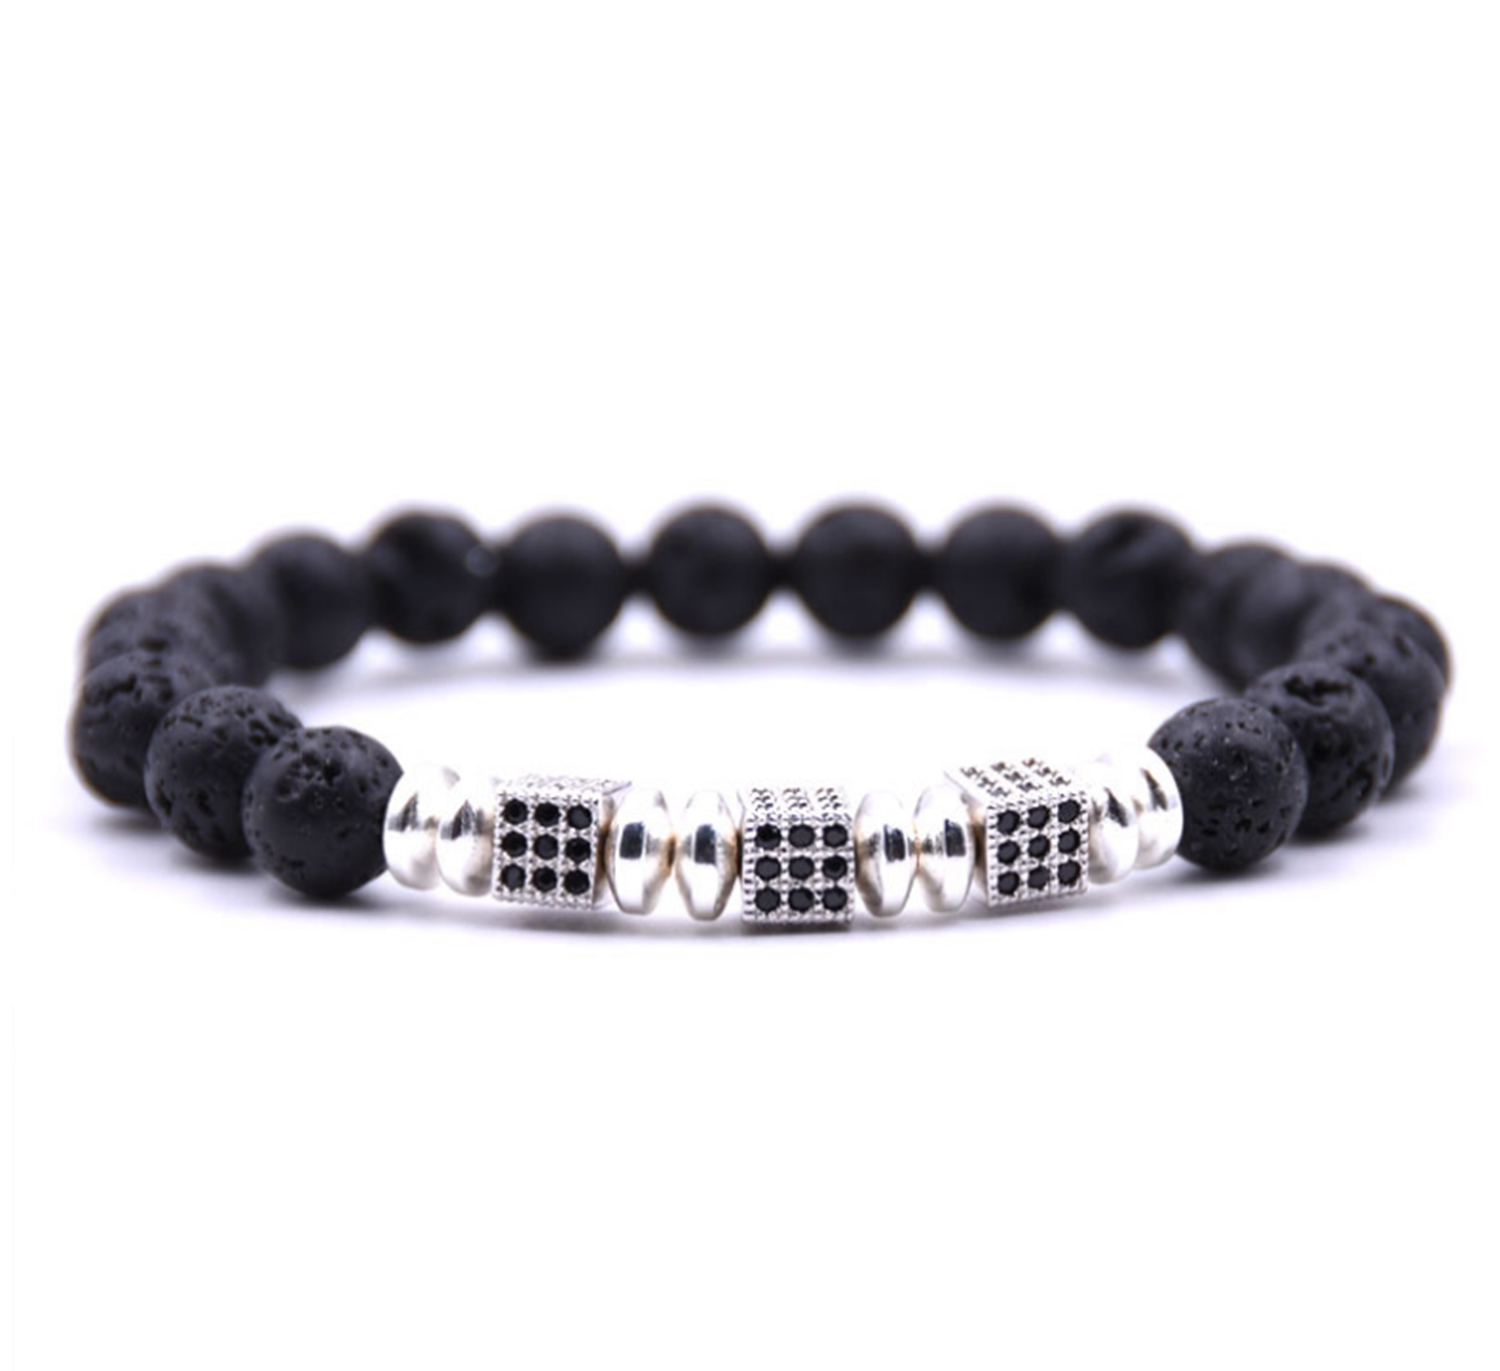 Essential Oil Lava Stone Diffusing Bracelet Health & Beauty Aromatherapy Jewellery With Gems.